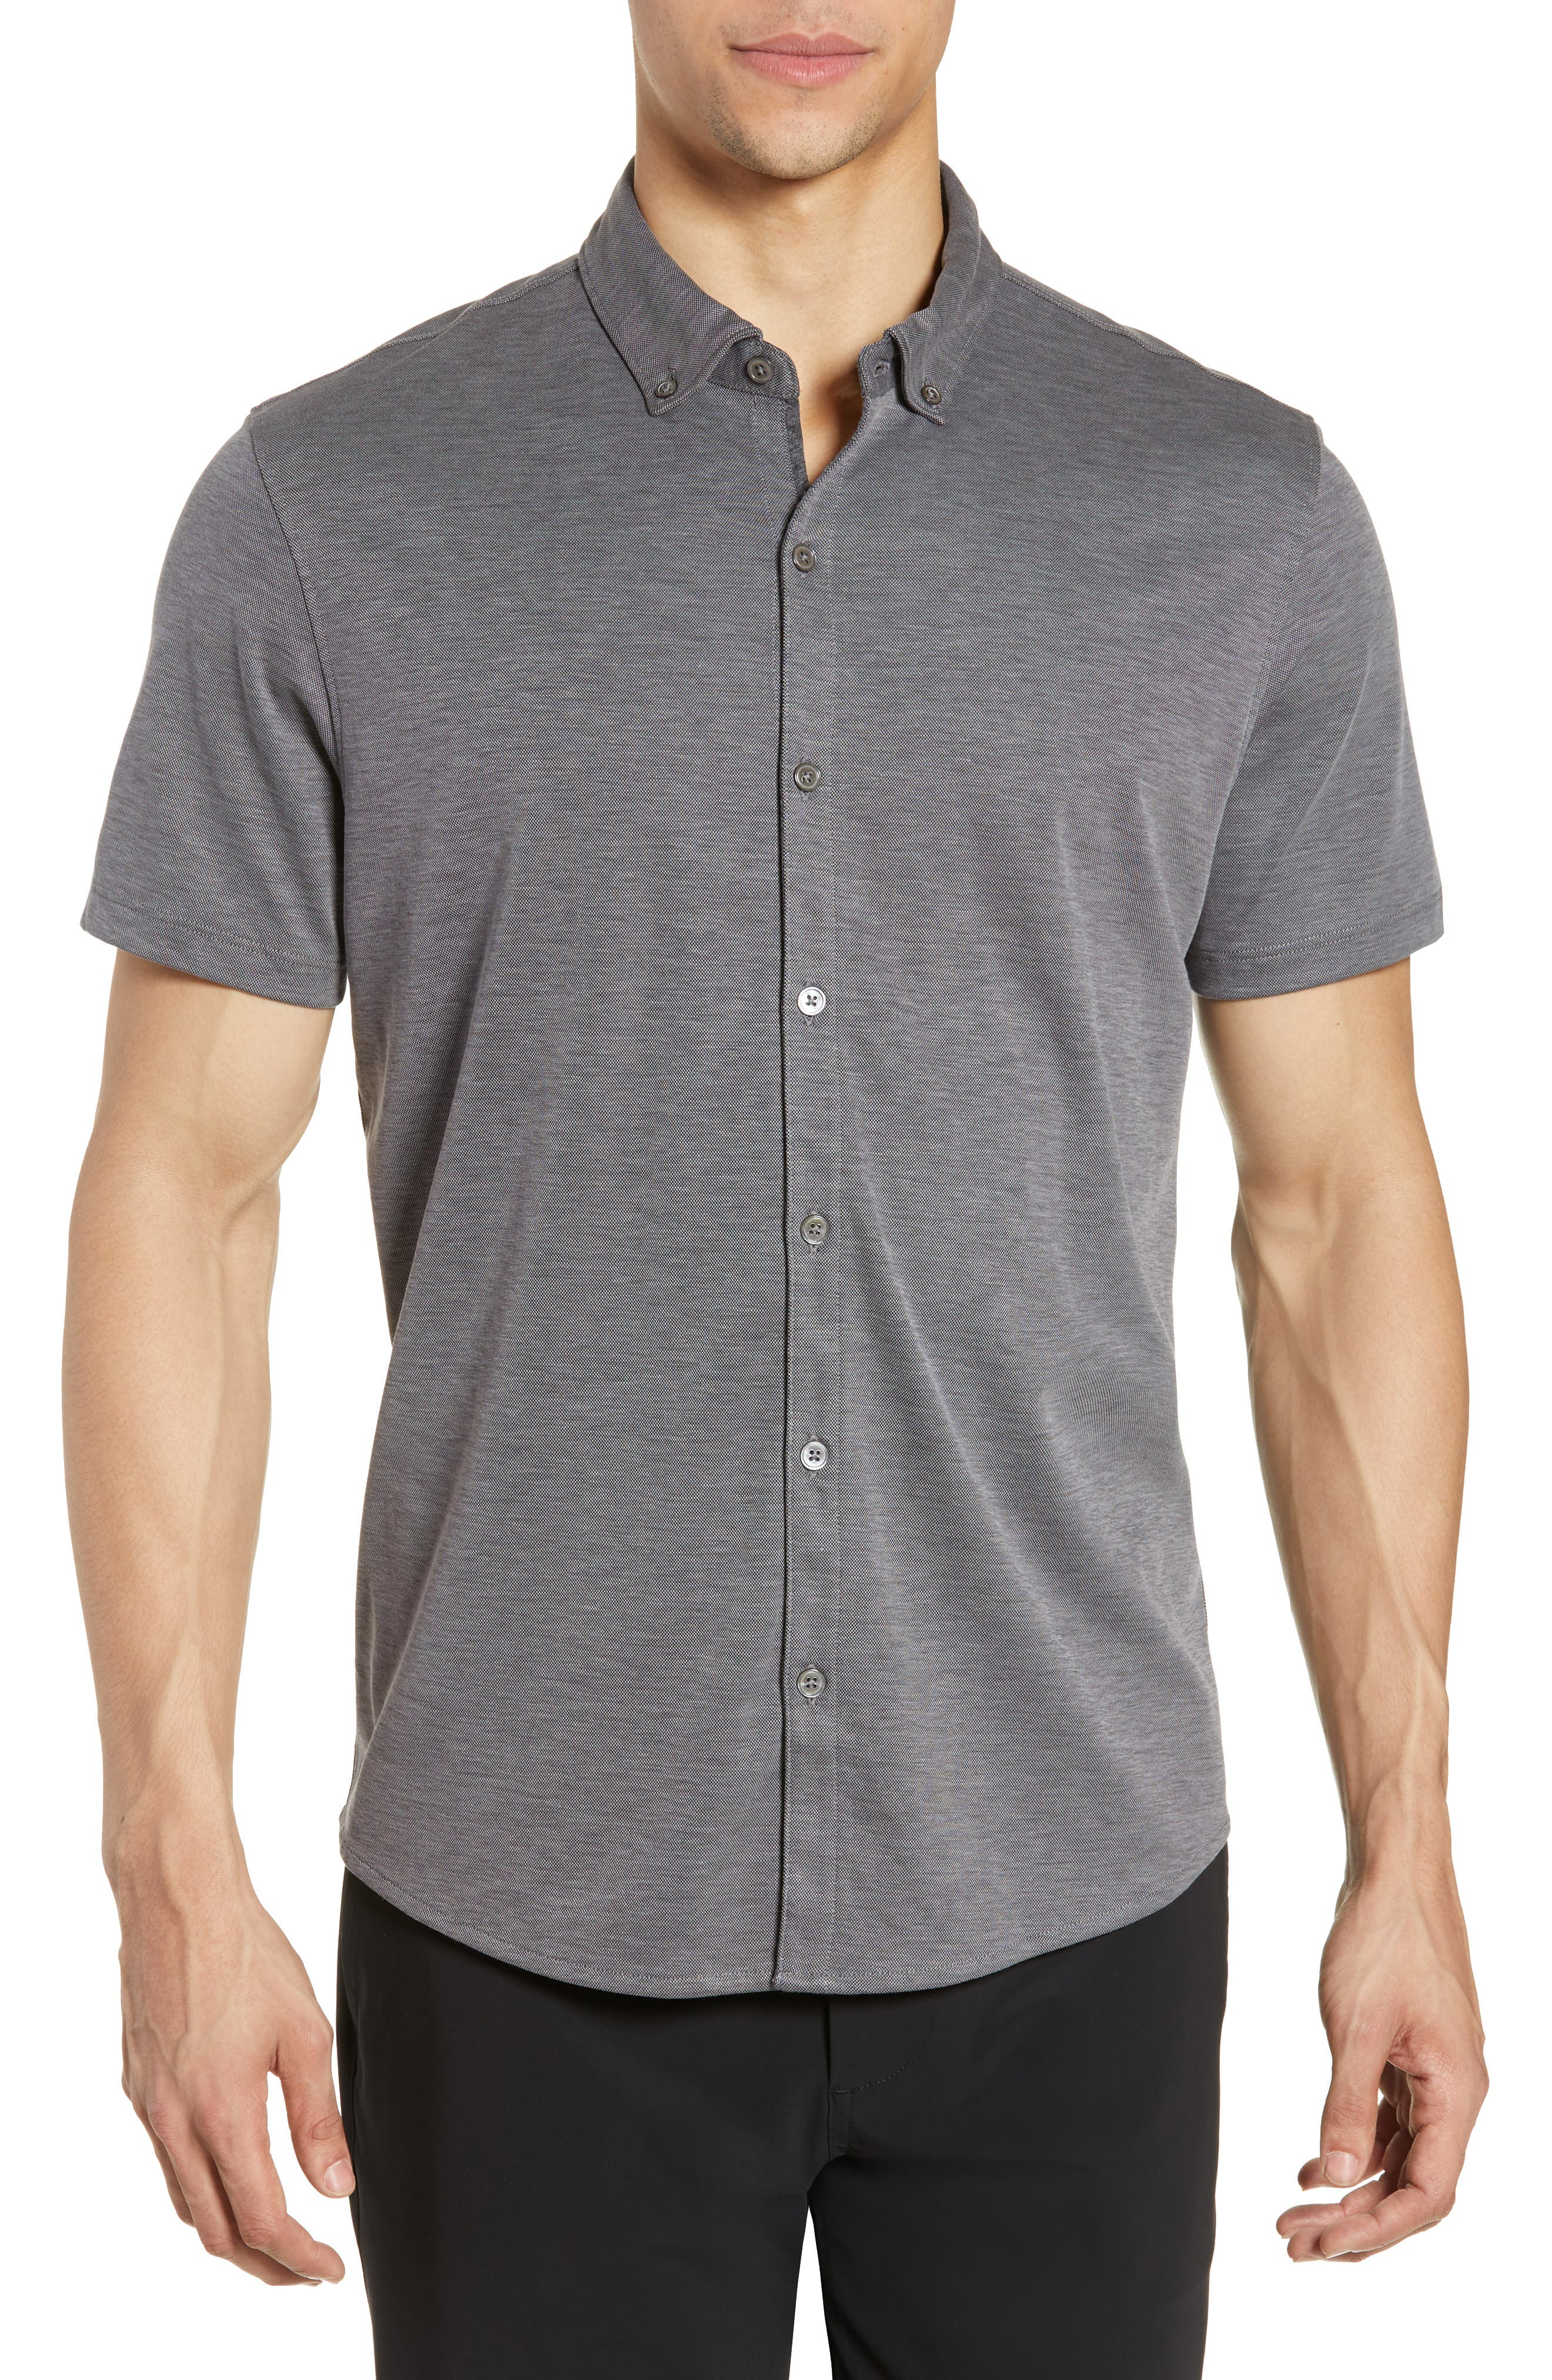 ZACHARY PRELL, Caruth Regular Fit Short Sleeve Sport Shirt, Main thumbnail 1, color, CHARCOAL